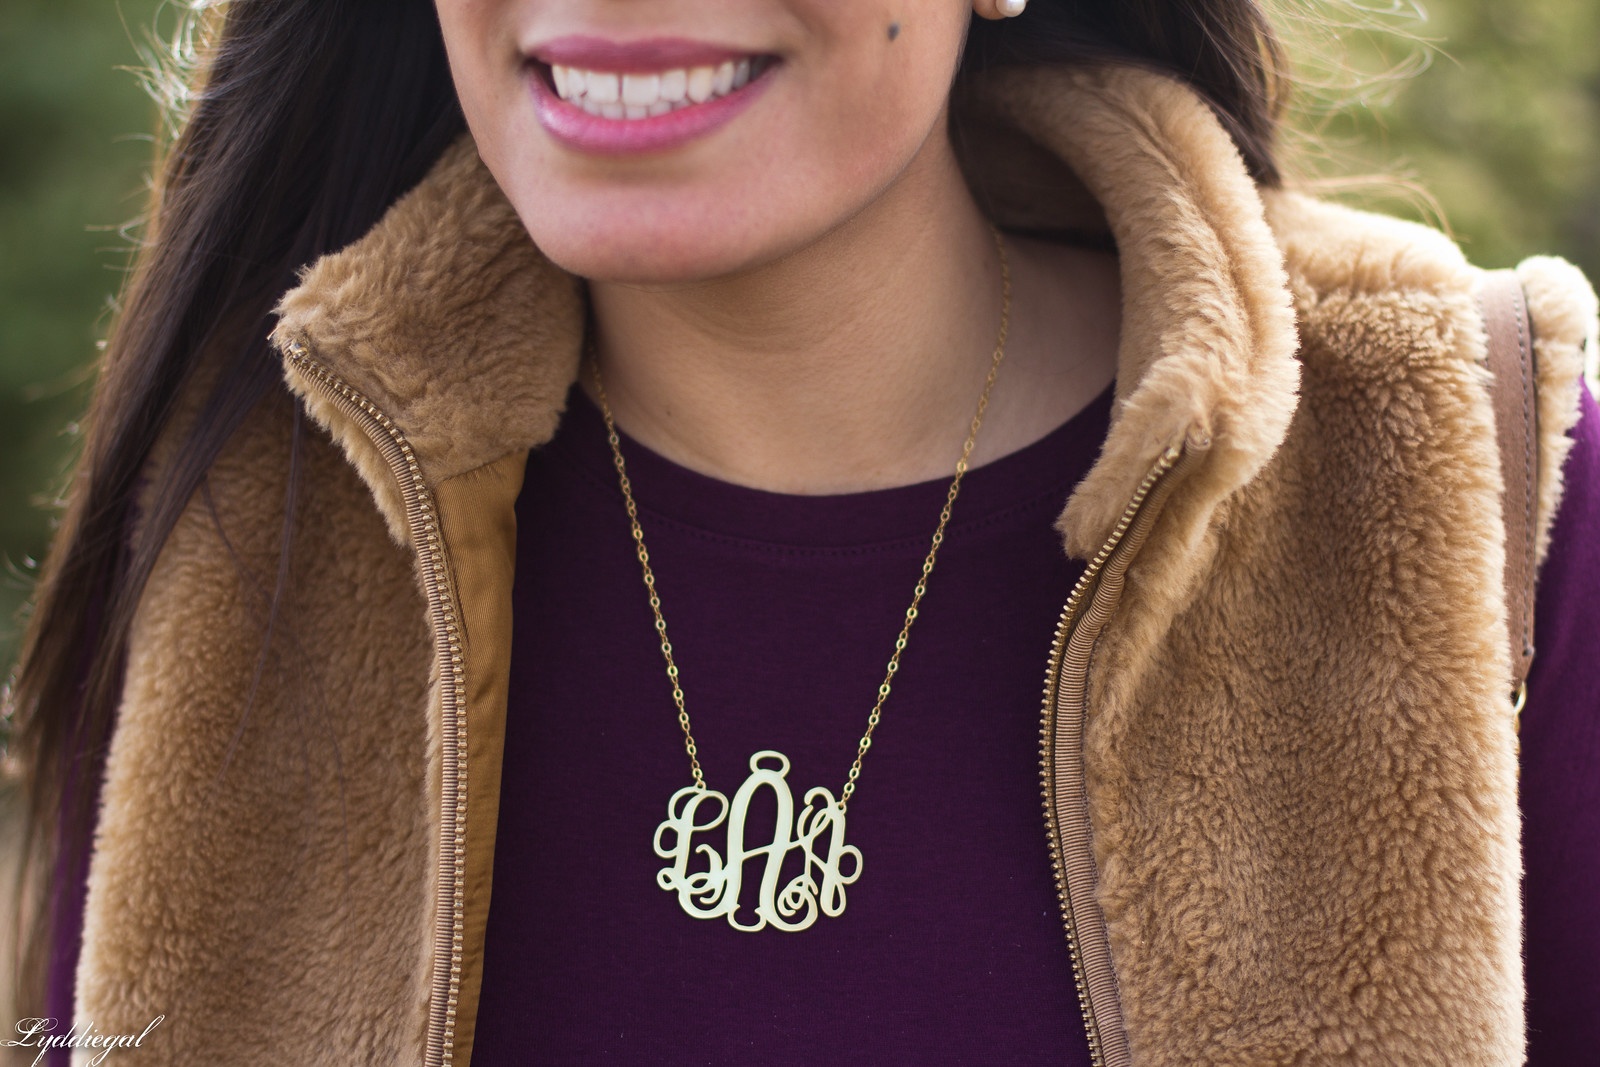 burgundy top, j.crew fleece vest, monogram necklace-7.jpg